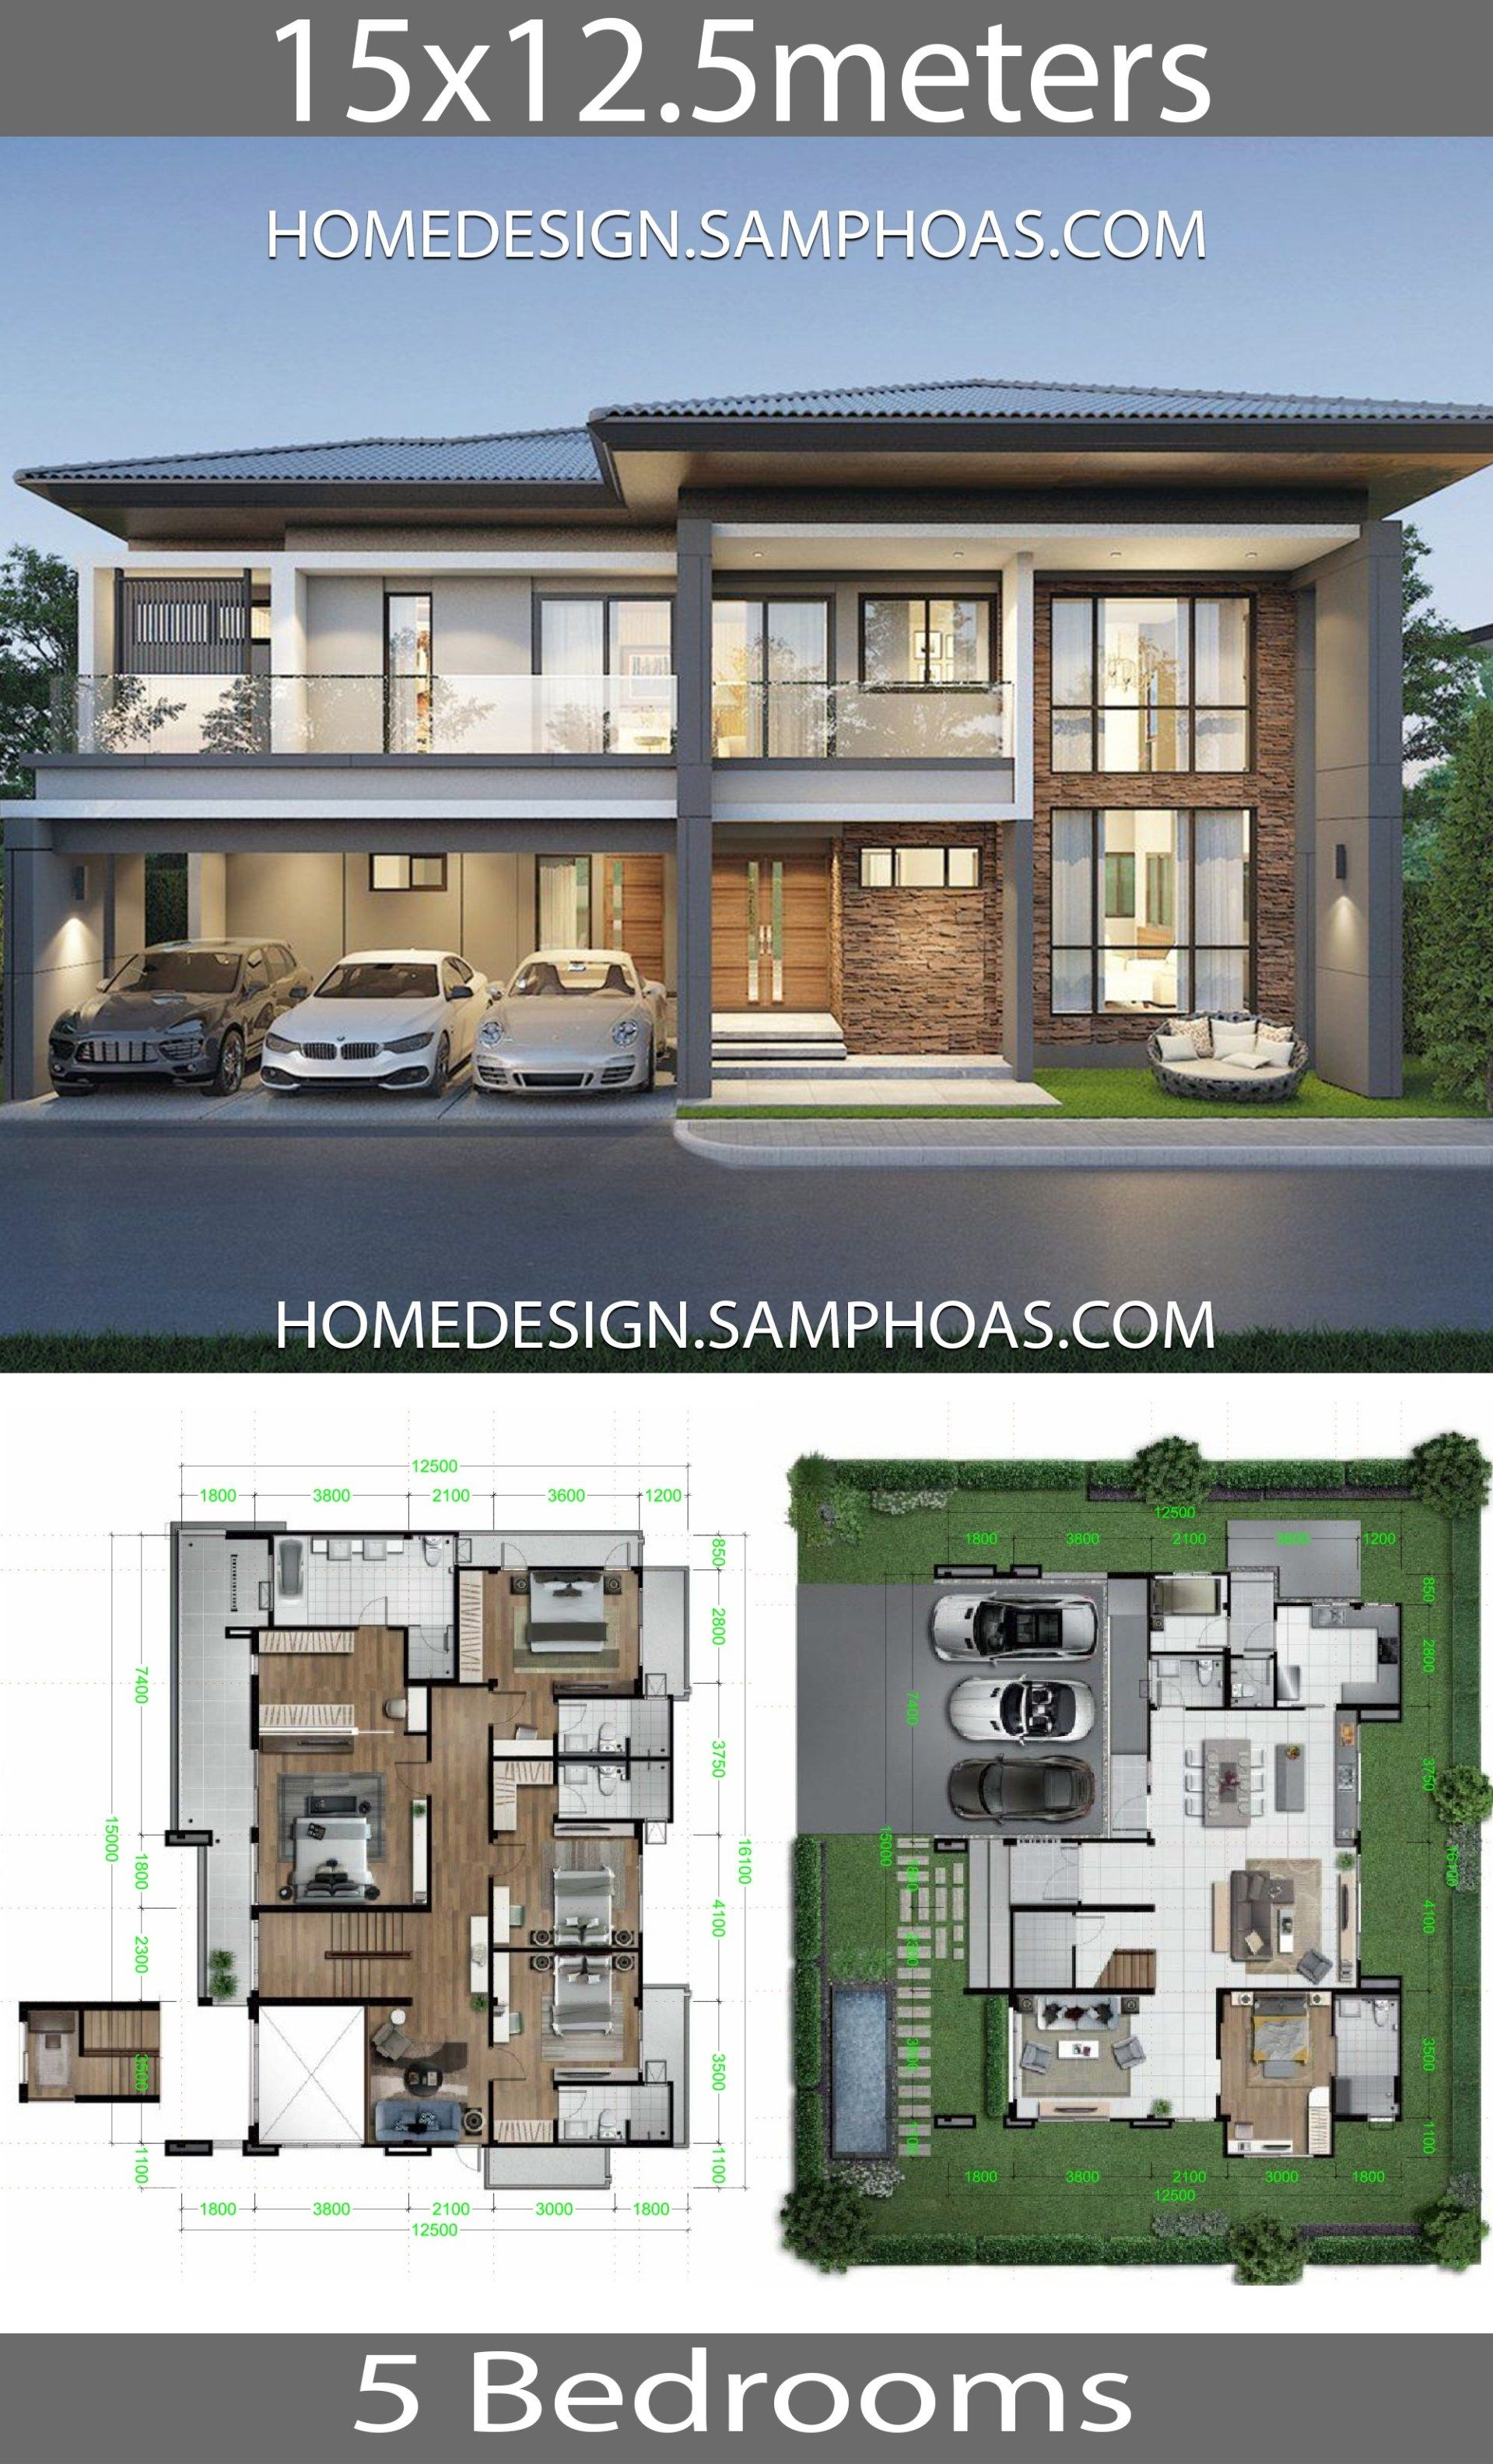 Home Design Plans 15x12 5m With 5 Bedrooms Home Ideas Home Design Plans House Layout Plans House Plans